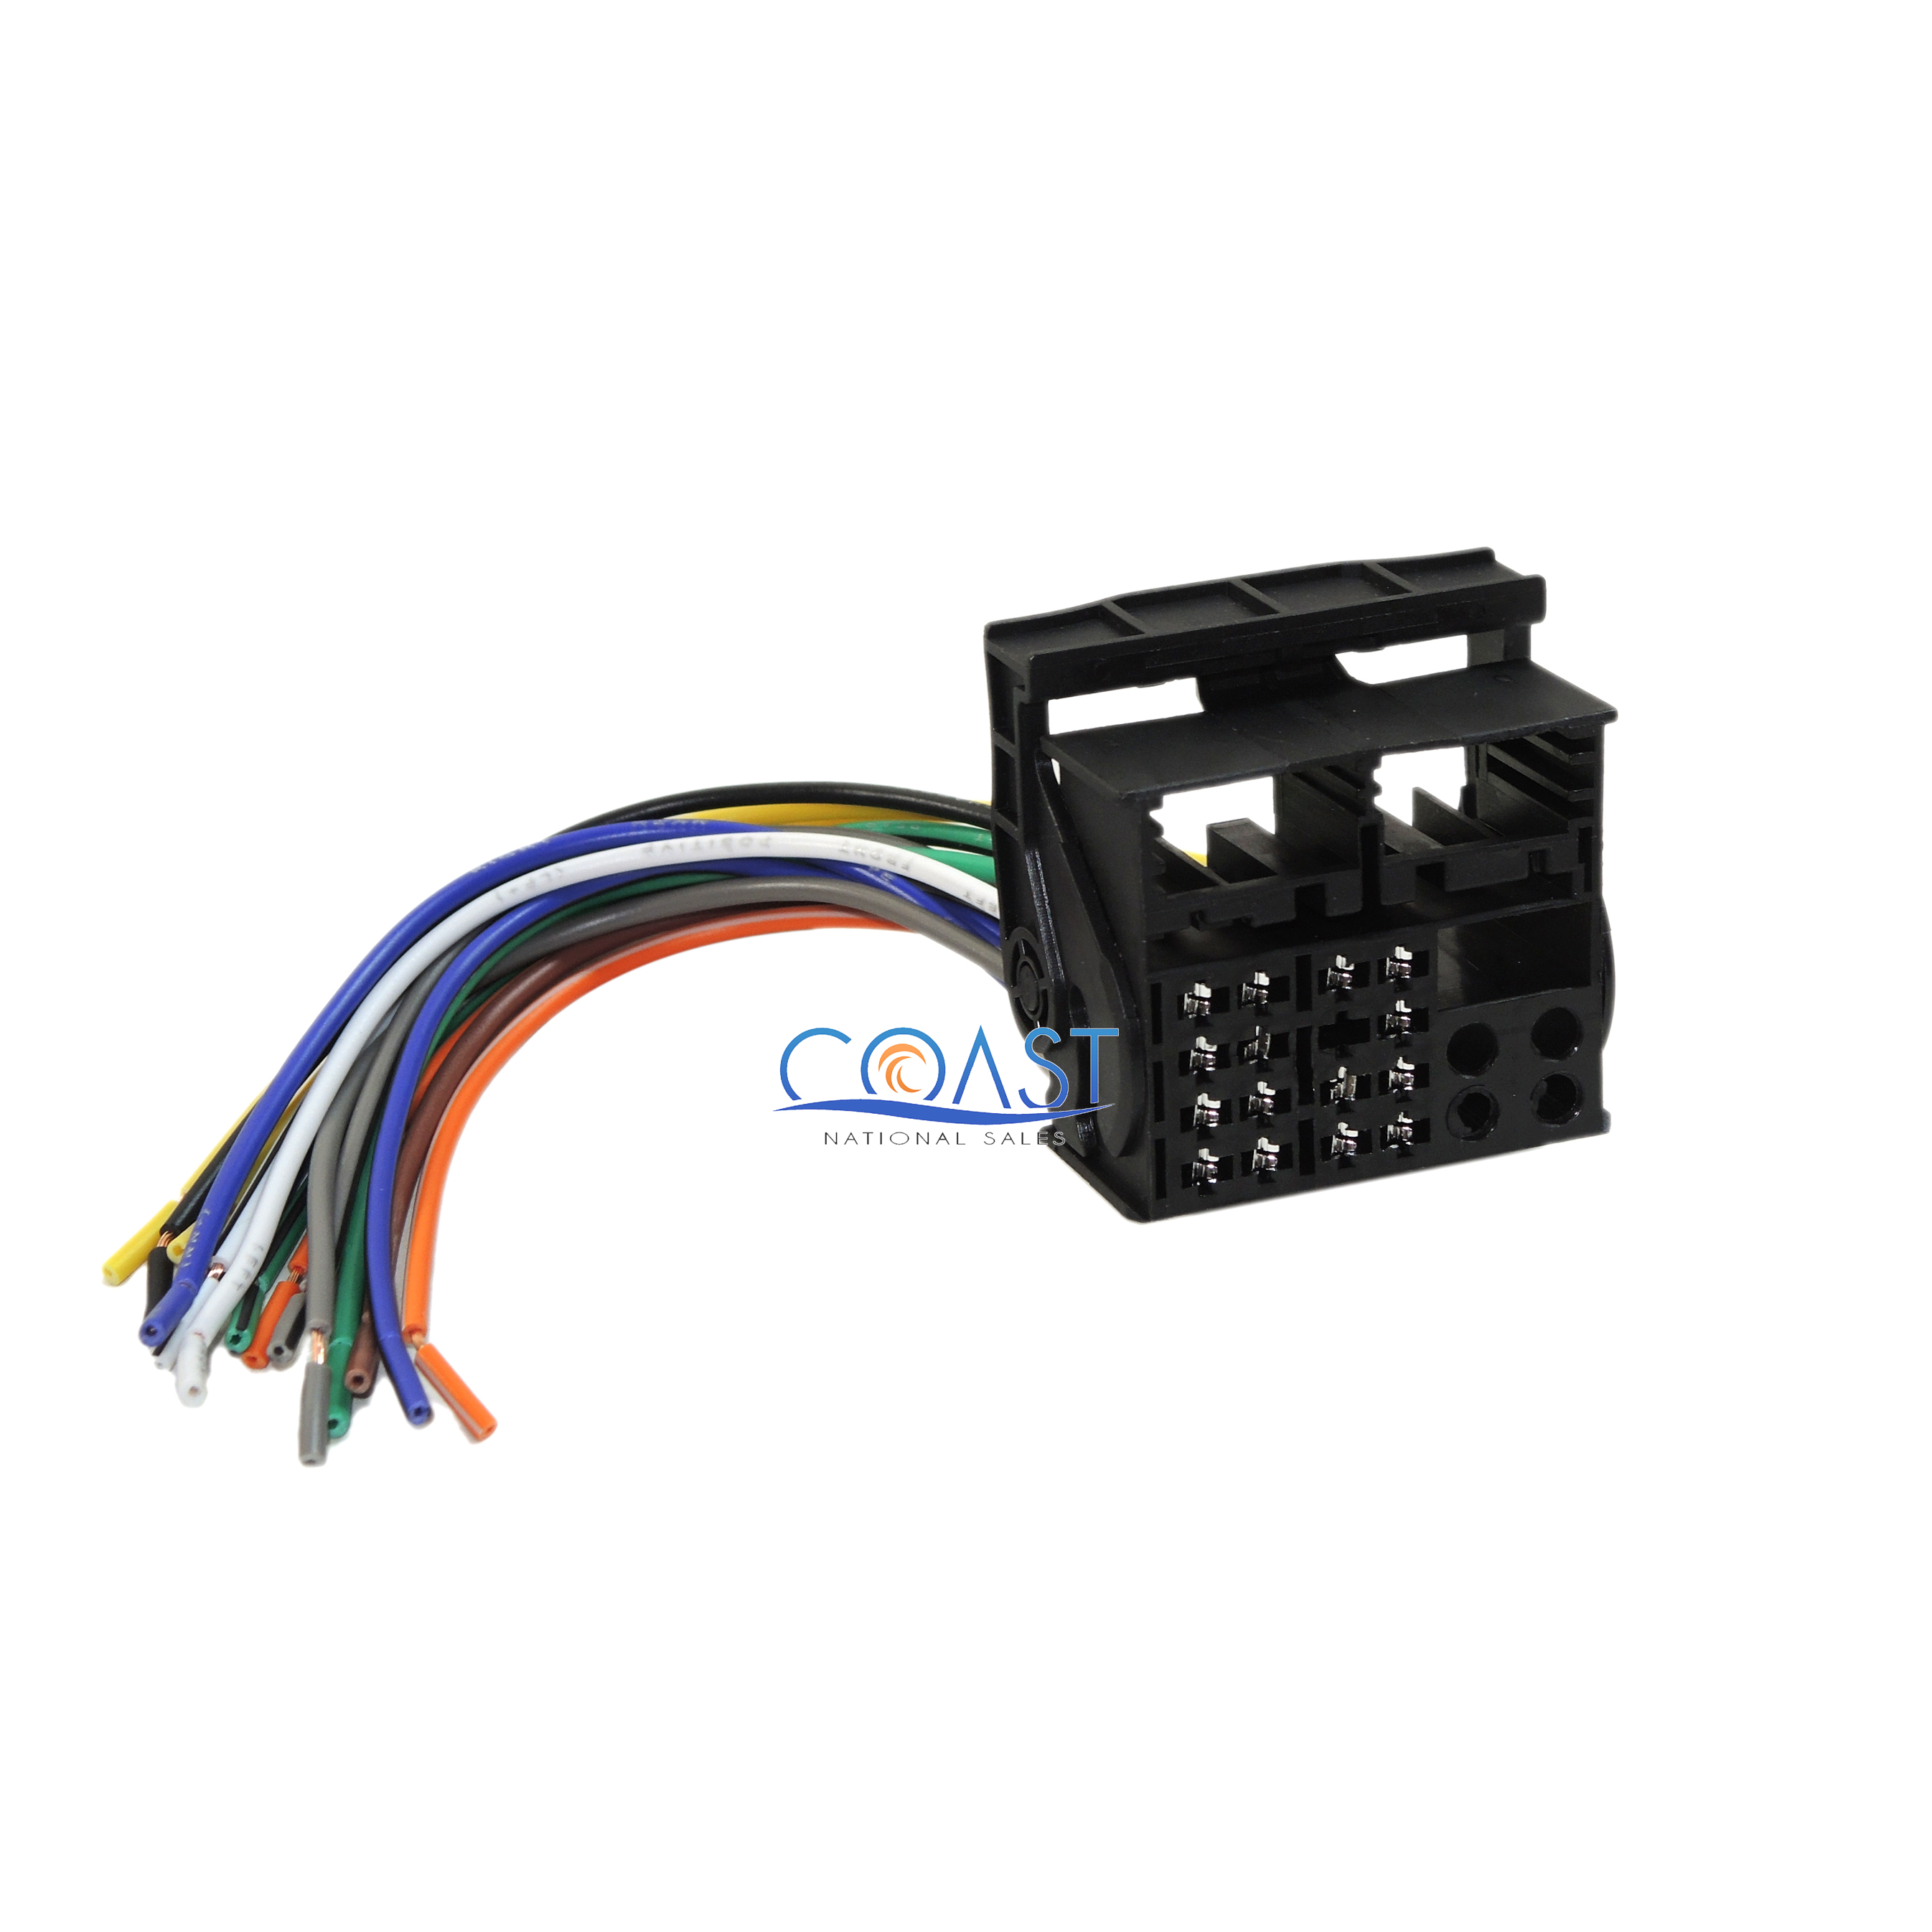 car wire harness plugs into factory radio for 2002 up bmw. Black Bedroom Furniture Sets. Home Design Ideas